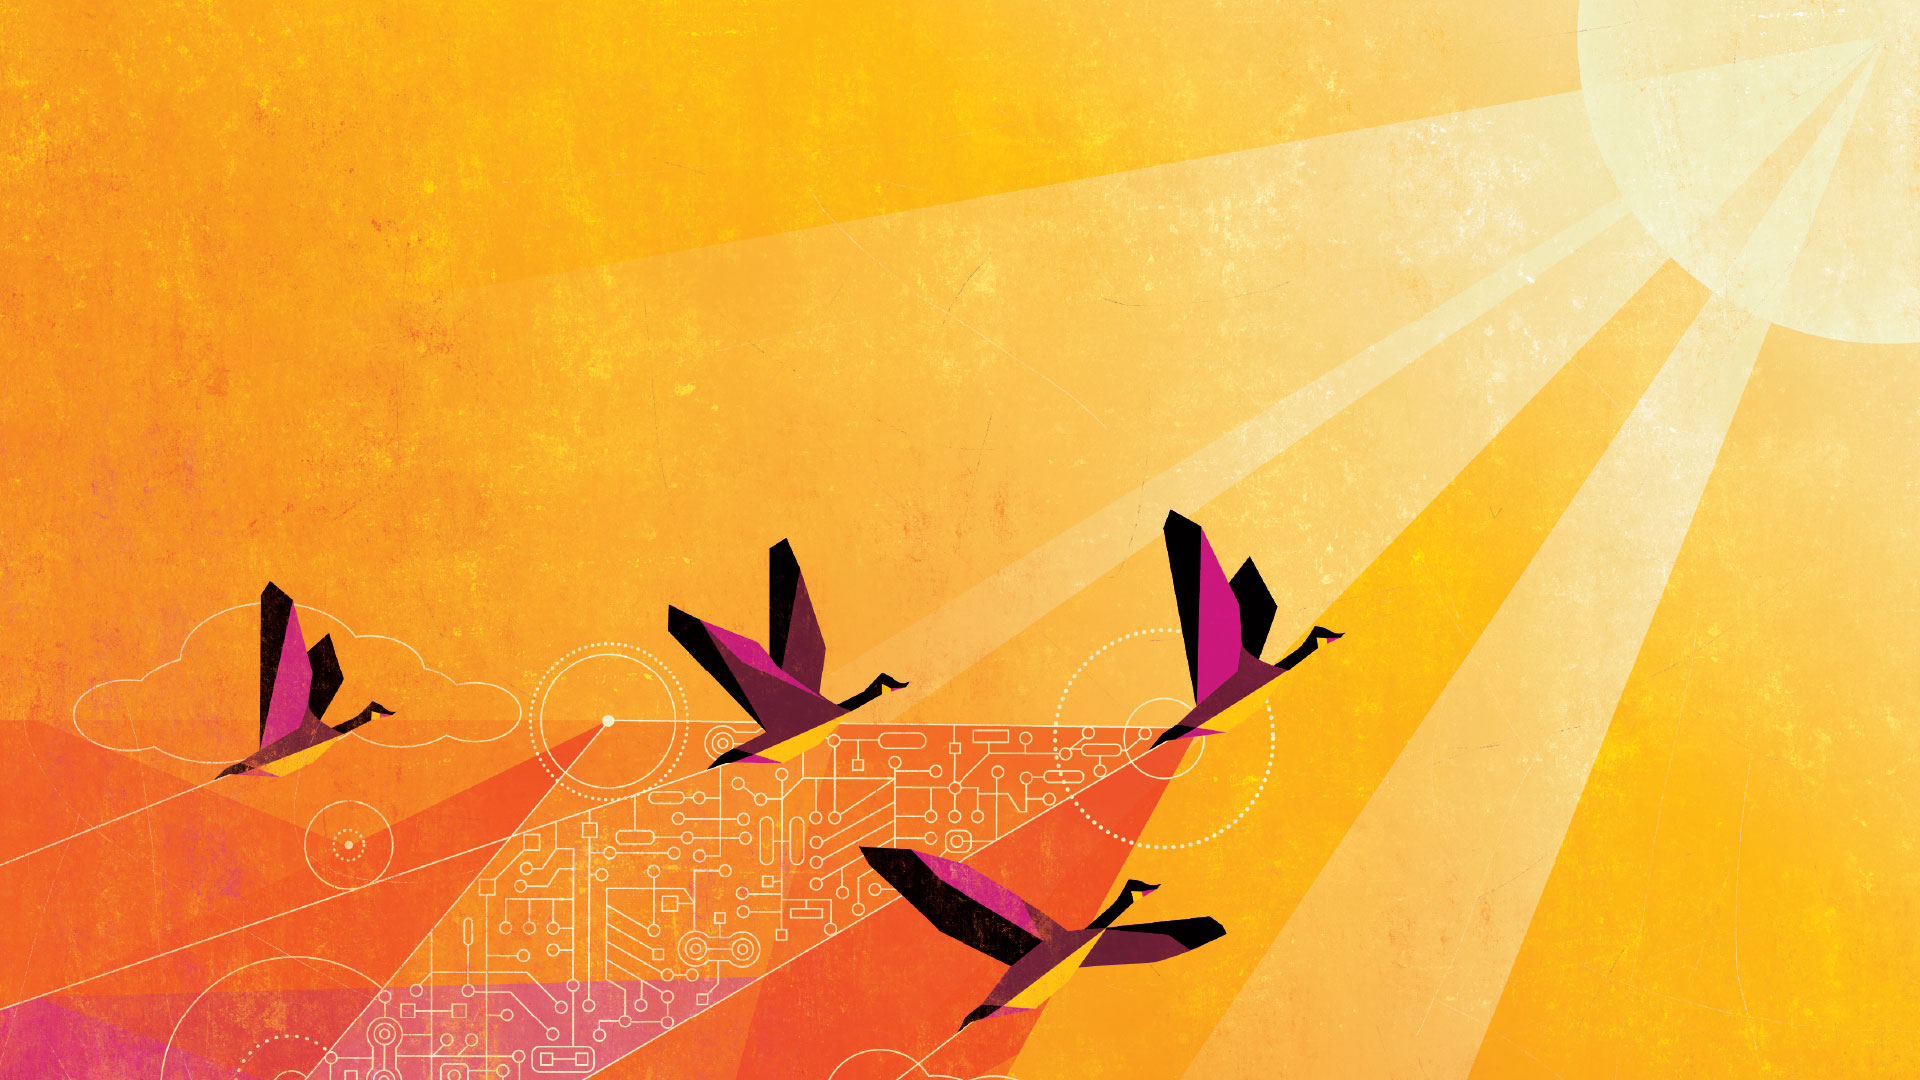 Illustration of geese on orange background